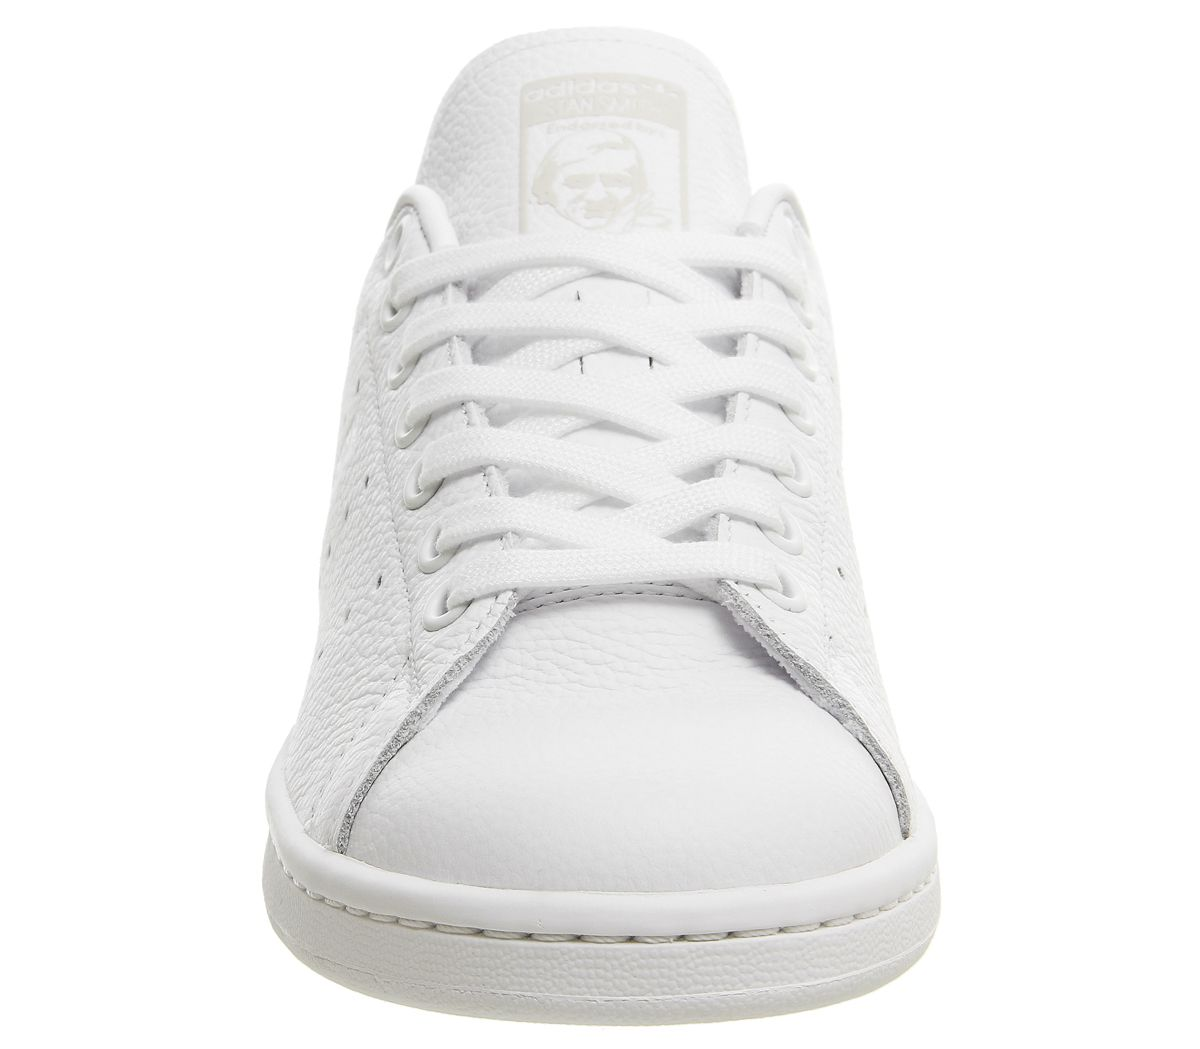 uk availability ff7aa fdca2 Short-Femme-Adidas-Stan-Smith-Baskets-White-Orchid-